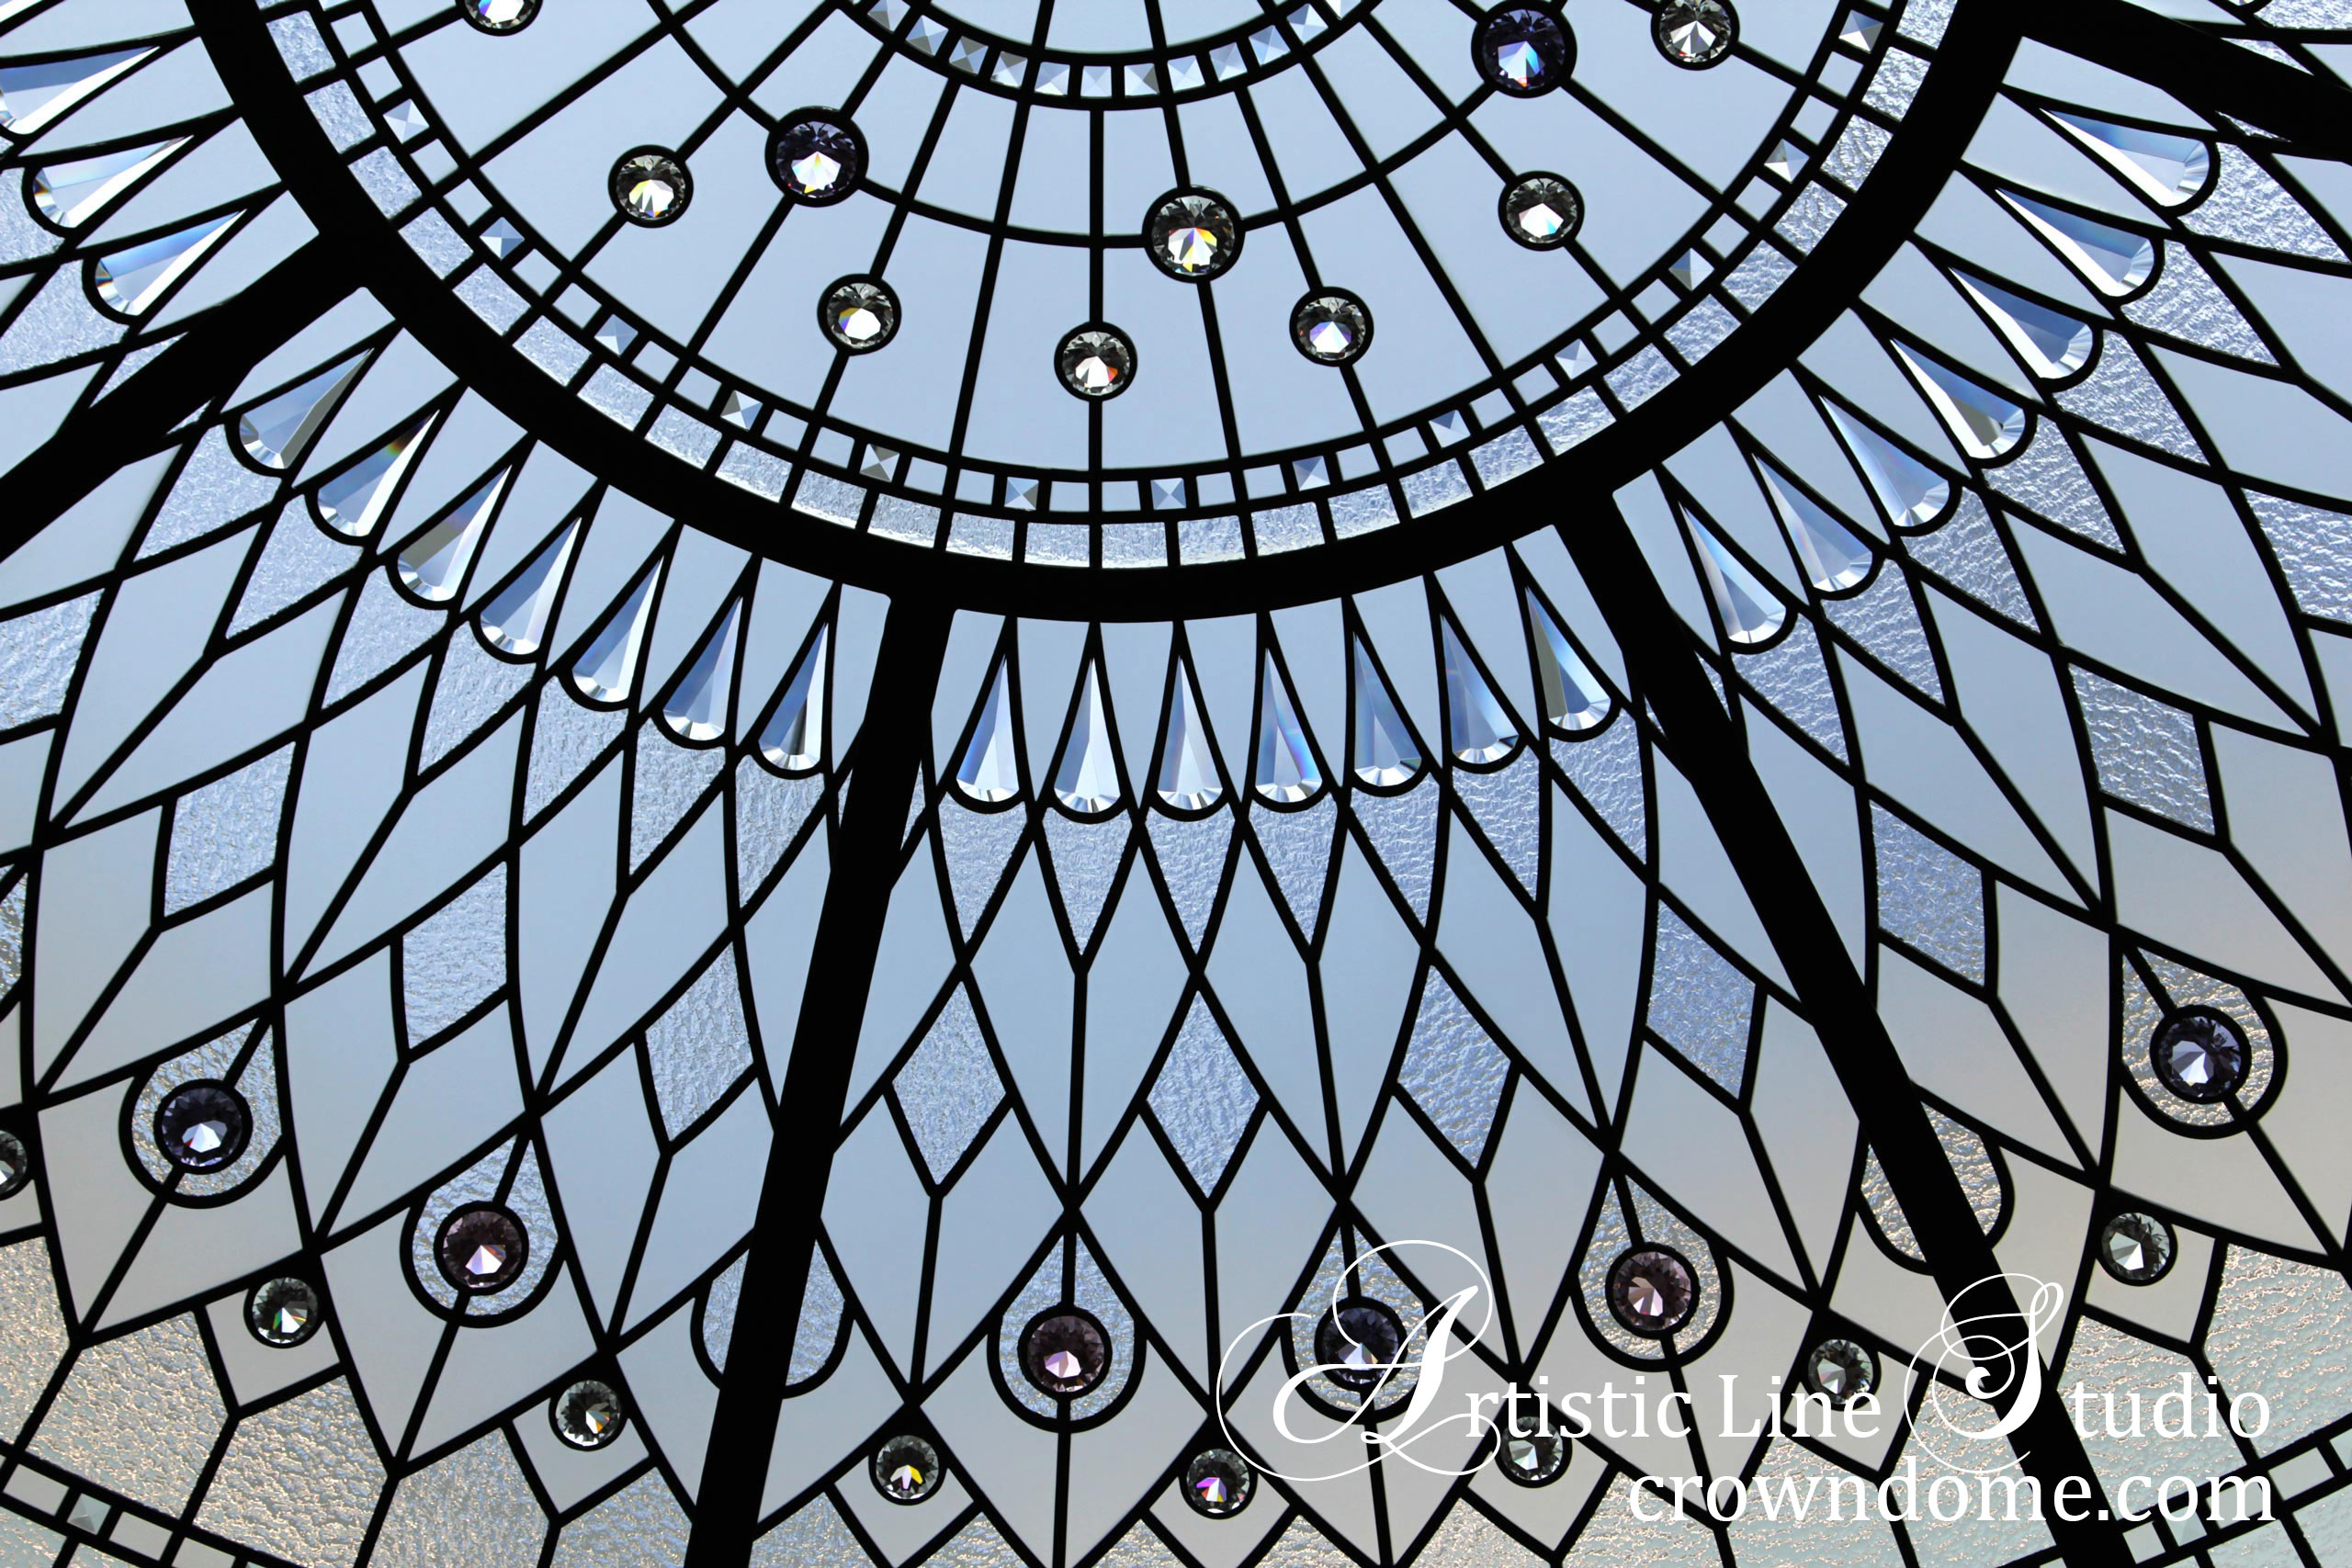 Stained glass dome ceiling with clear and colored crystal jewels, clear textured glasses